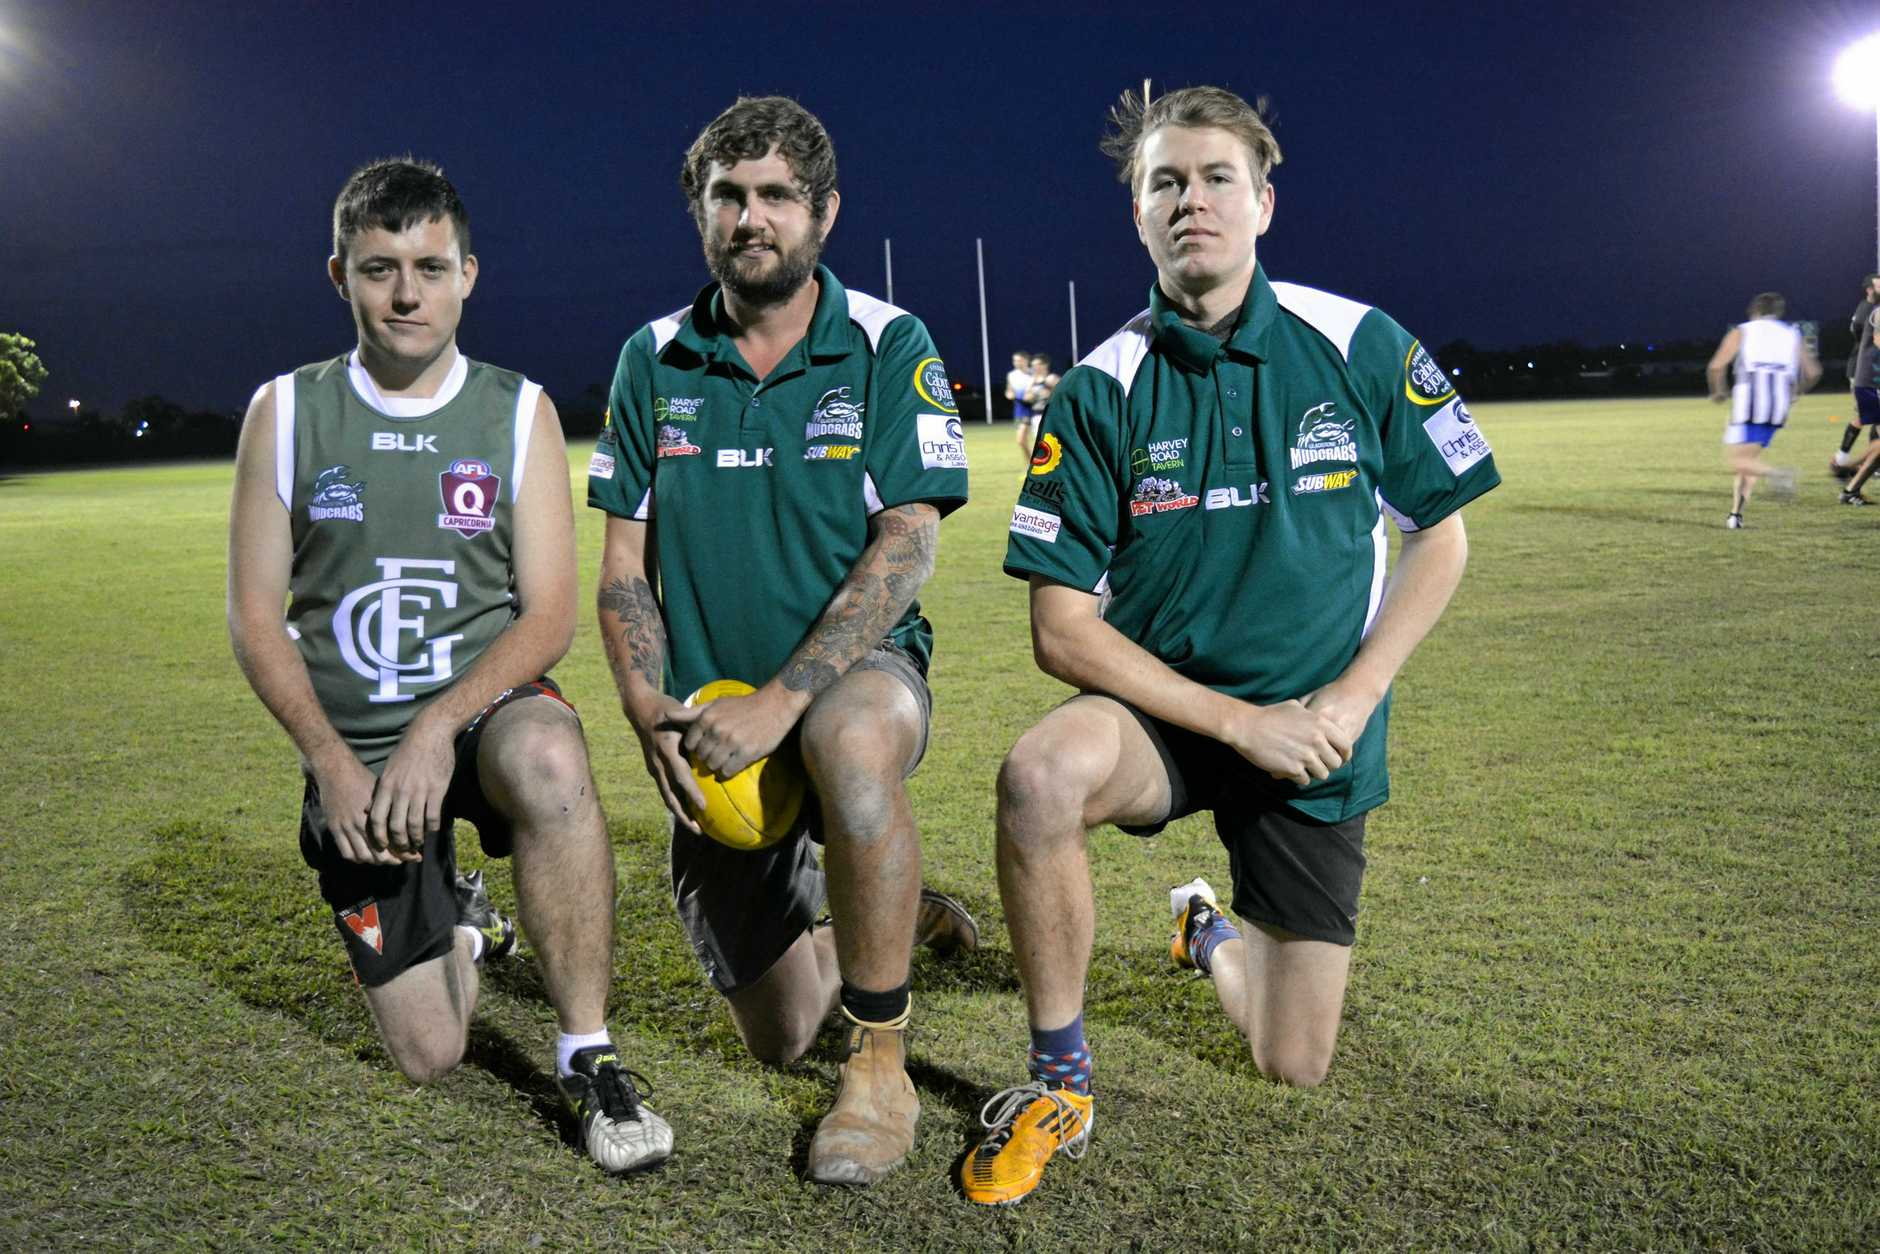 FINALS BOUND: Gladstone Mudcrabs players Aaron Monish, Zac Jahn and Josh Brown cannot wait for the toughest test in AFL Capricornia football - and that is beating Yeppoon in Saturday's second semi-final.